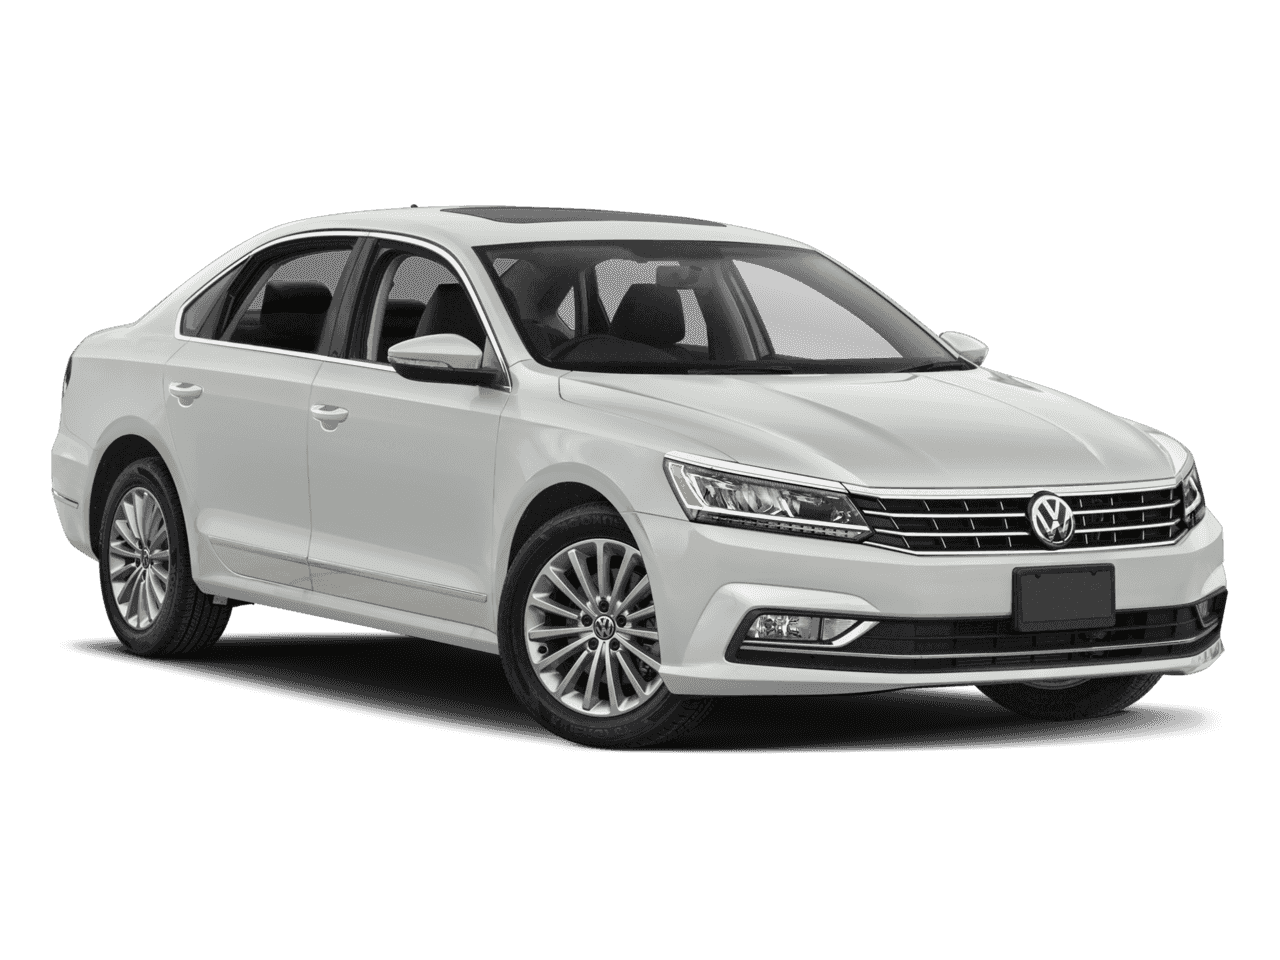 New 2018 Volkswagen Passat 2 0t Se 4dr Car In San Jose V25101t